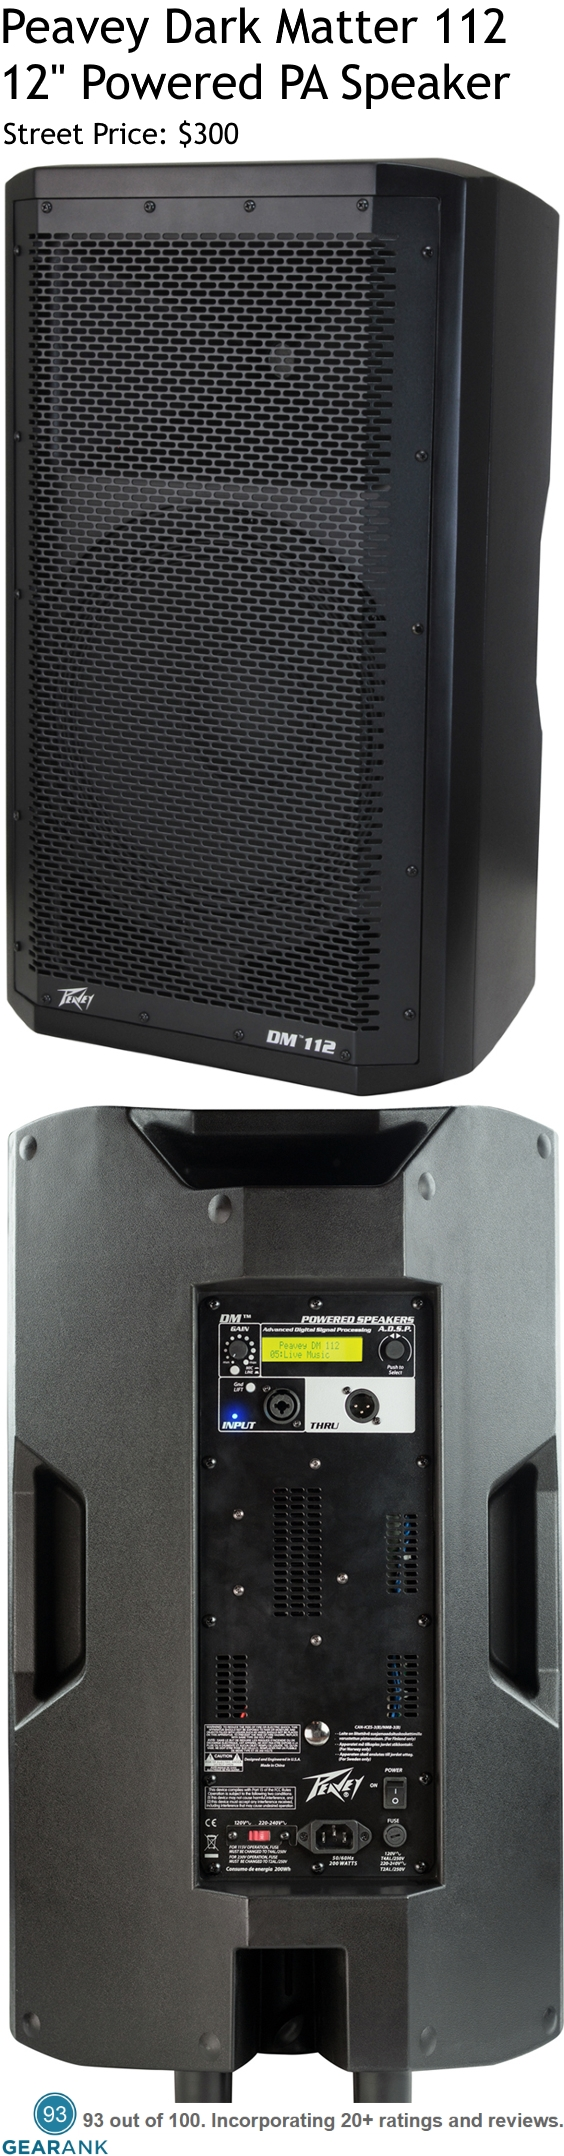 Pin by Gearank on PA Speakers | Powered pa speakers, Pa